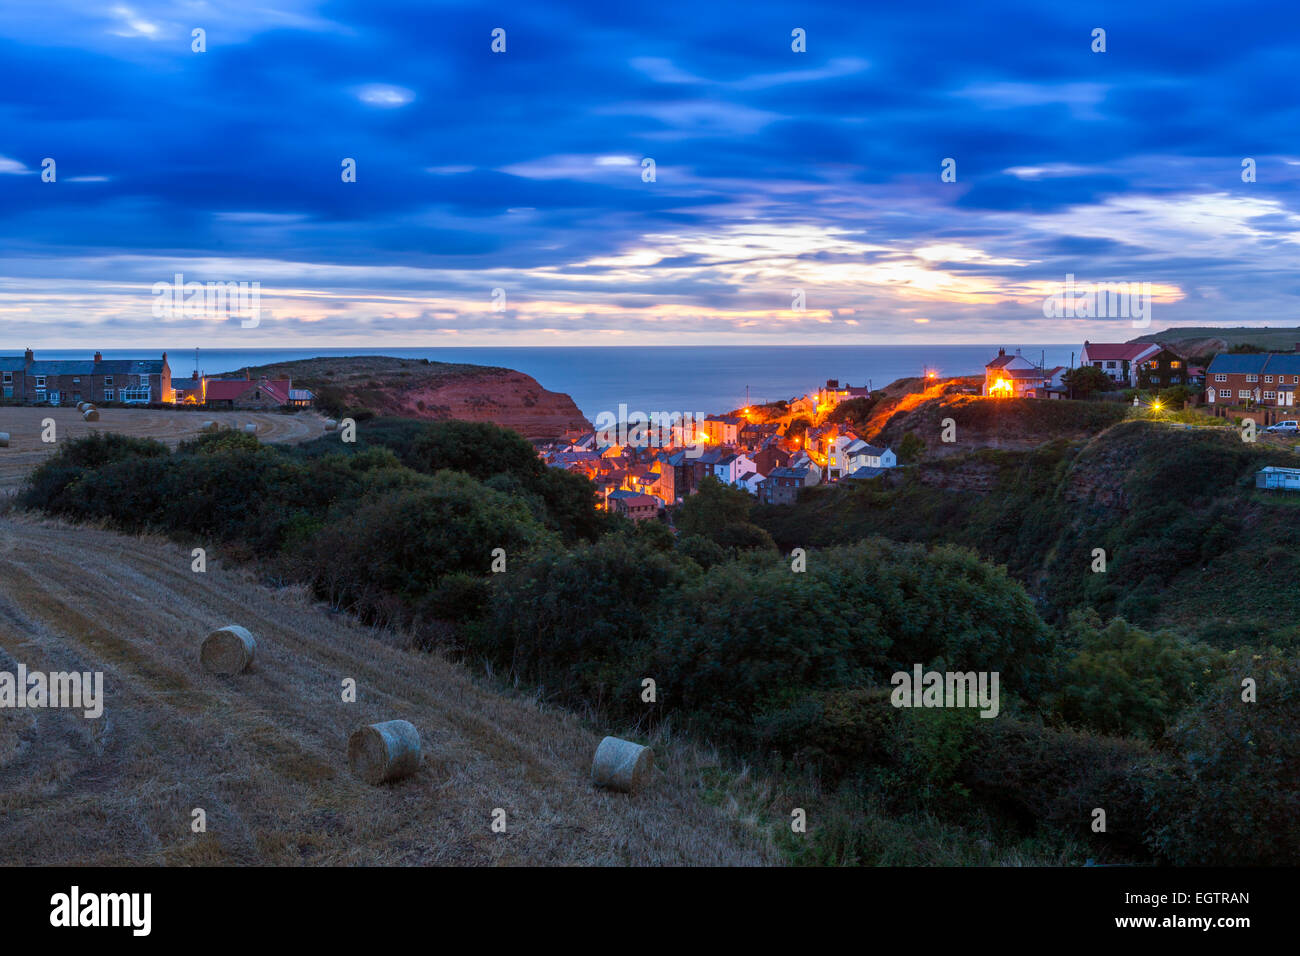 A view over the traditional fishing village of Staithes, North Yorkshire, England, United Kingdom, Europe. - Stock Image